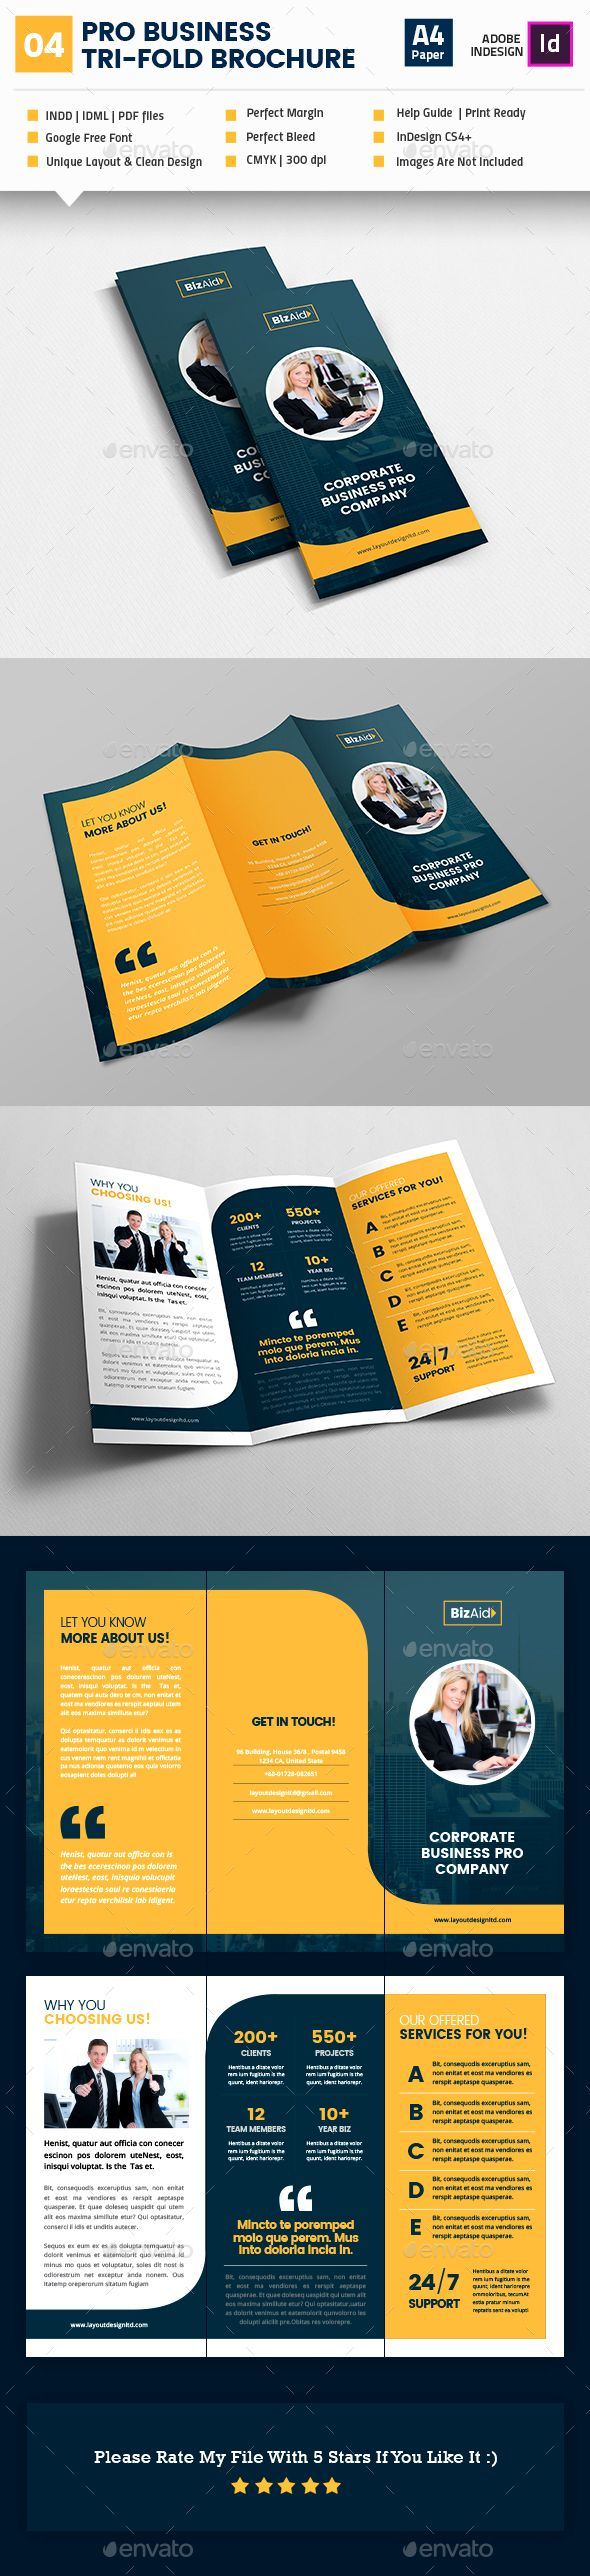 Pro Business Tri-Fold Brochure V04